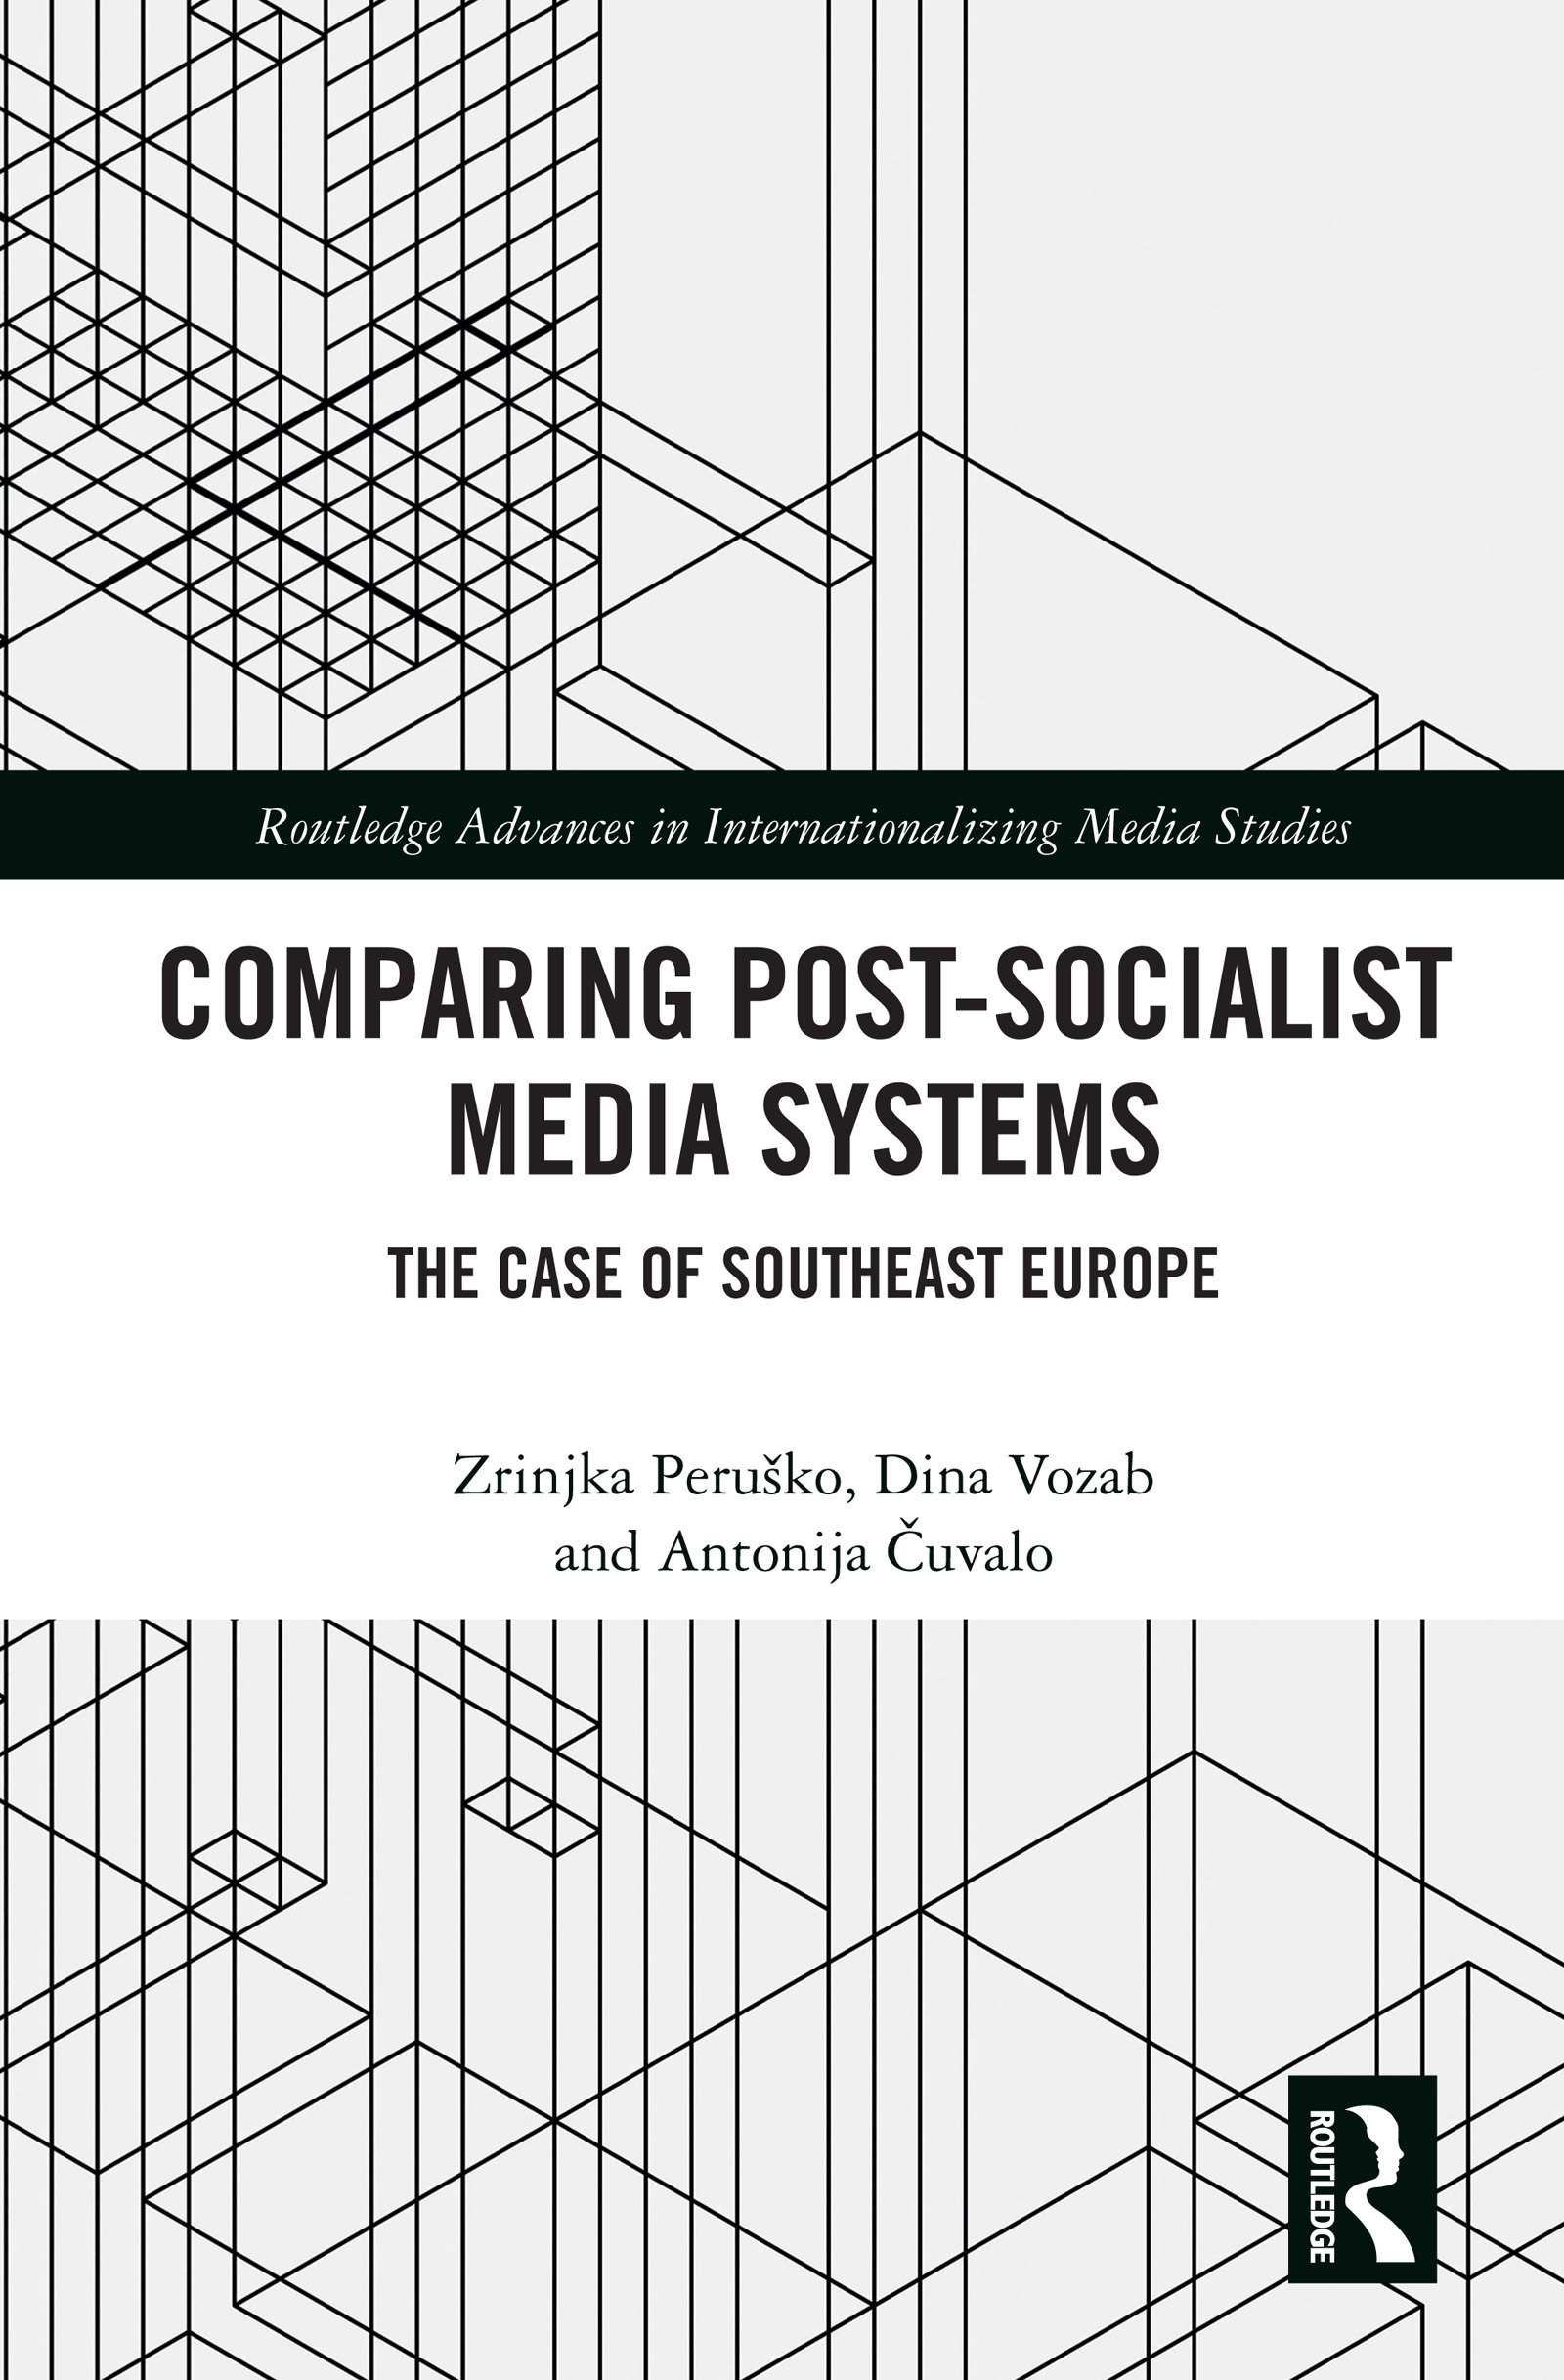 Comparing Post-Socialist Media Systems